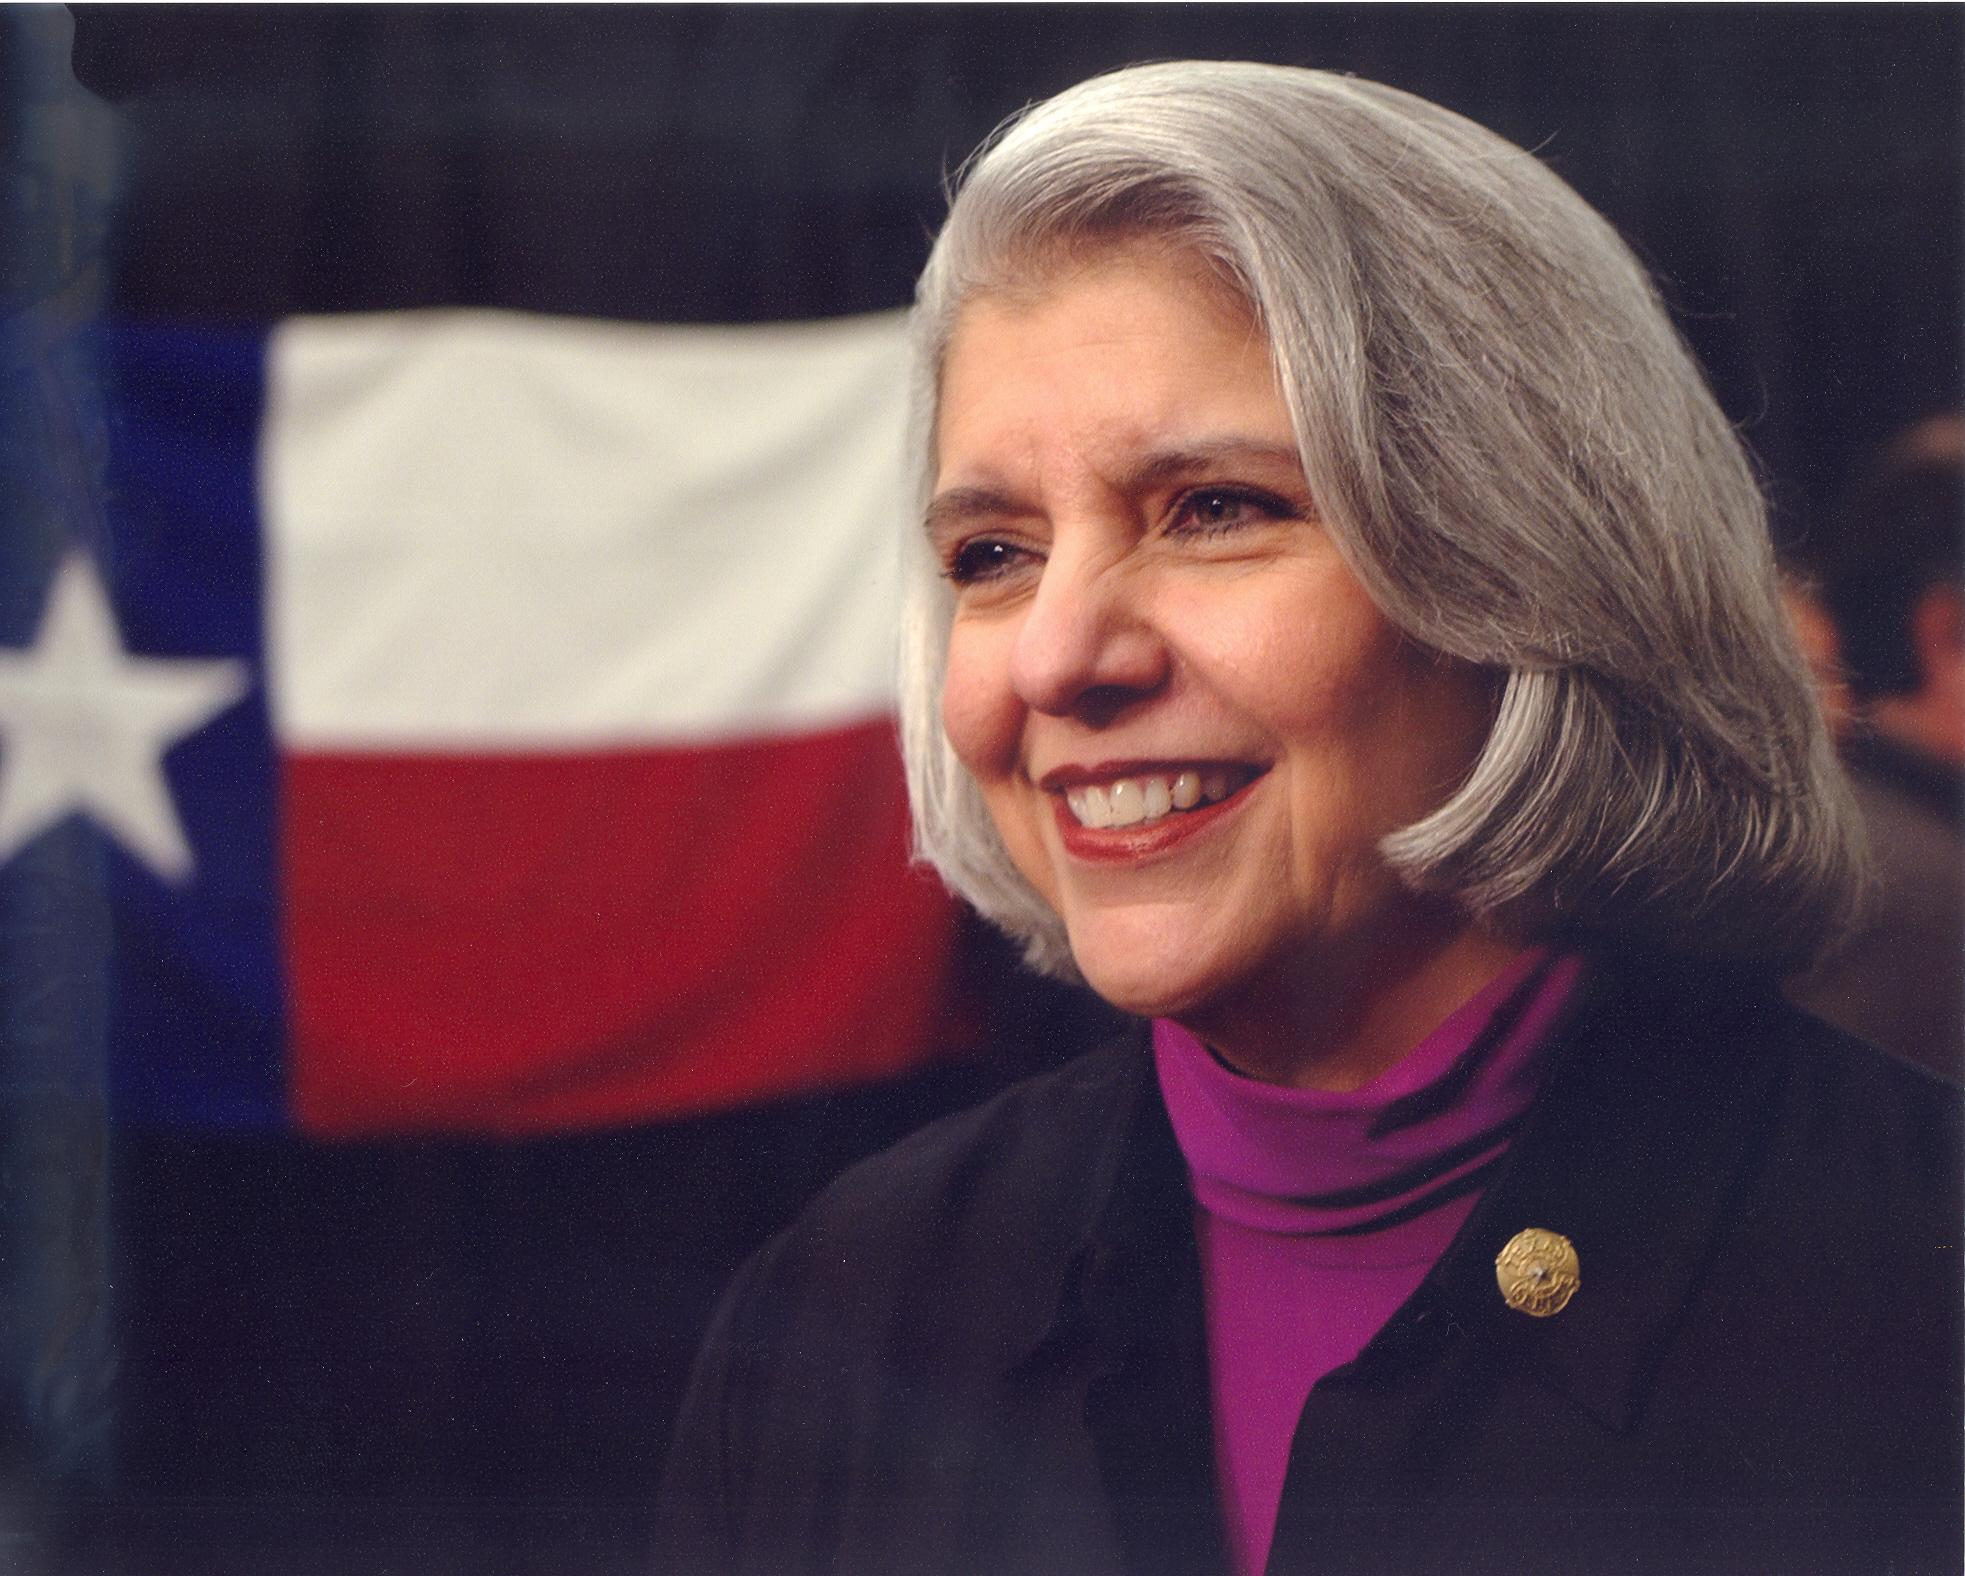 Zaffirini: Texans deserve a government as good as they are